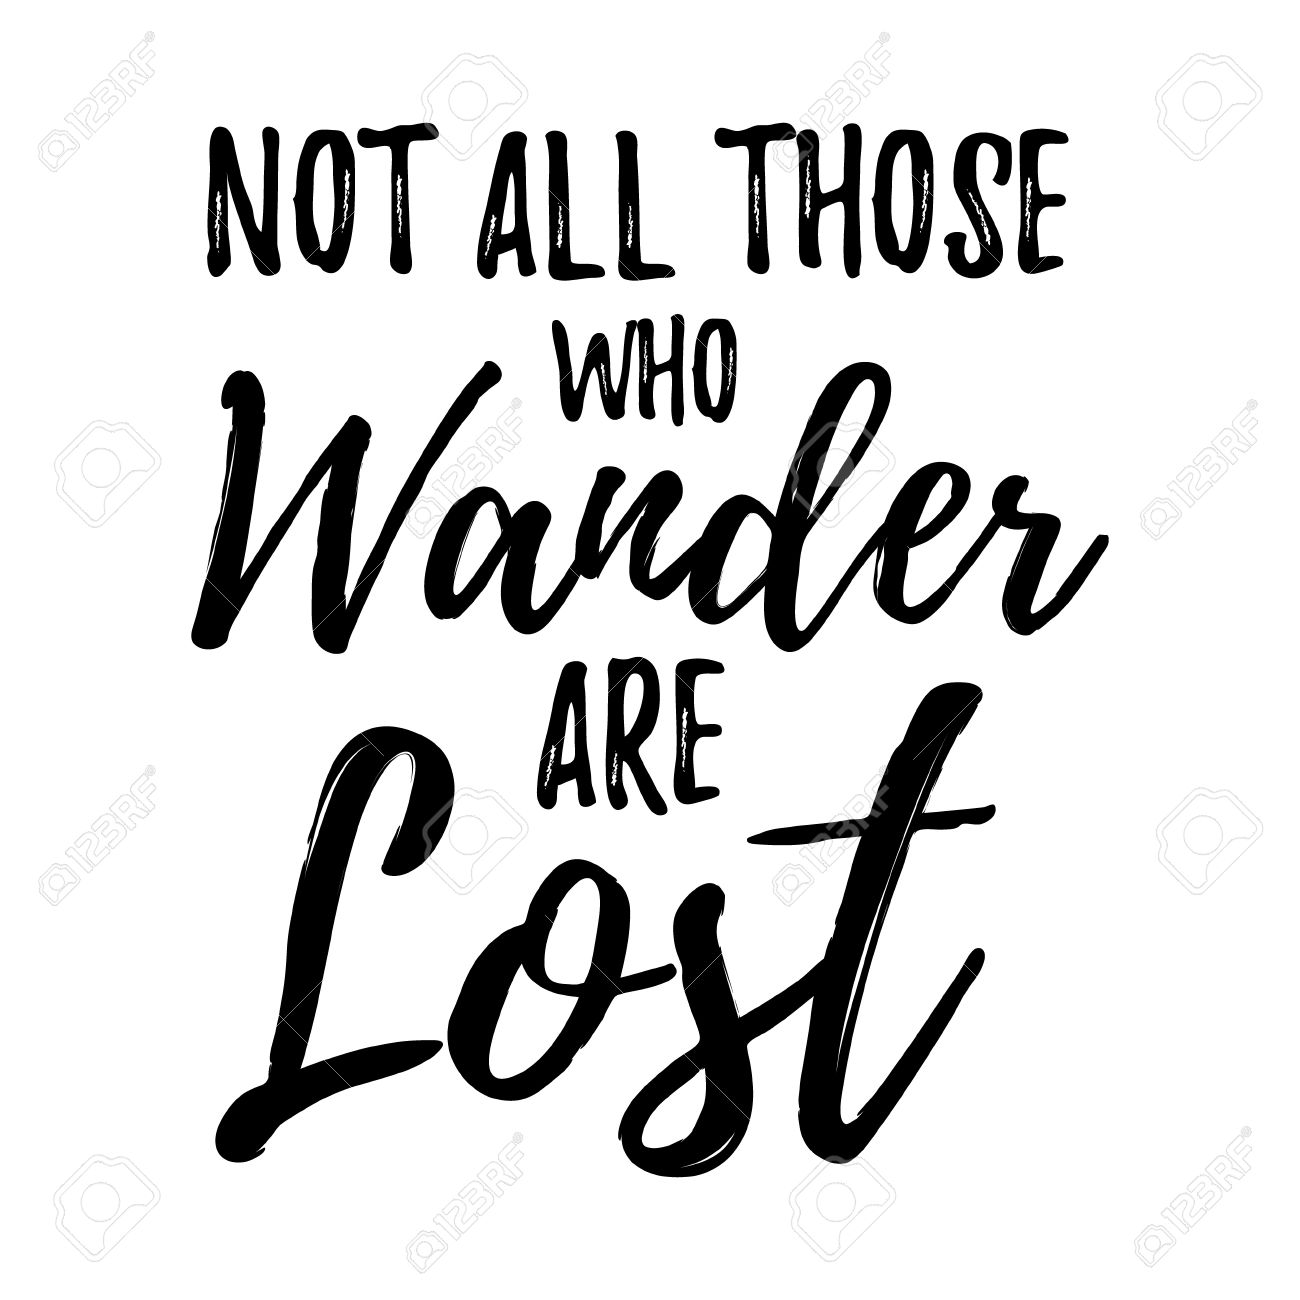 Not All Those Who Wander Are Lost Motivational Lettering Poster.